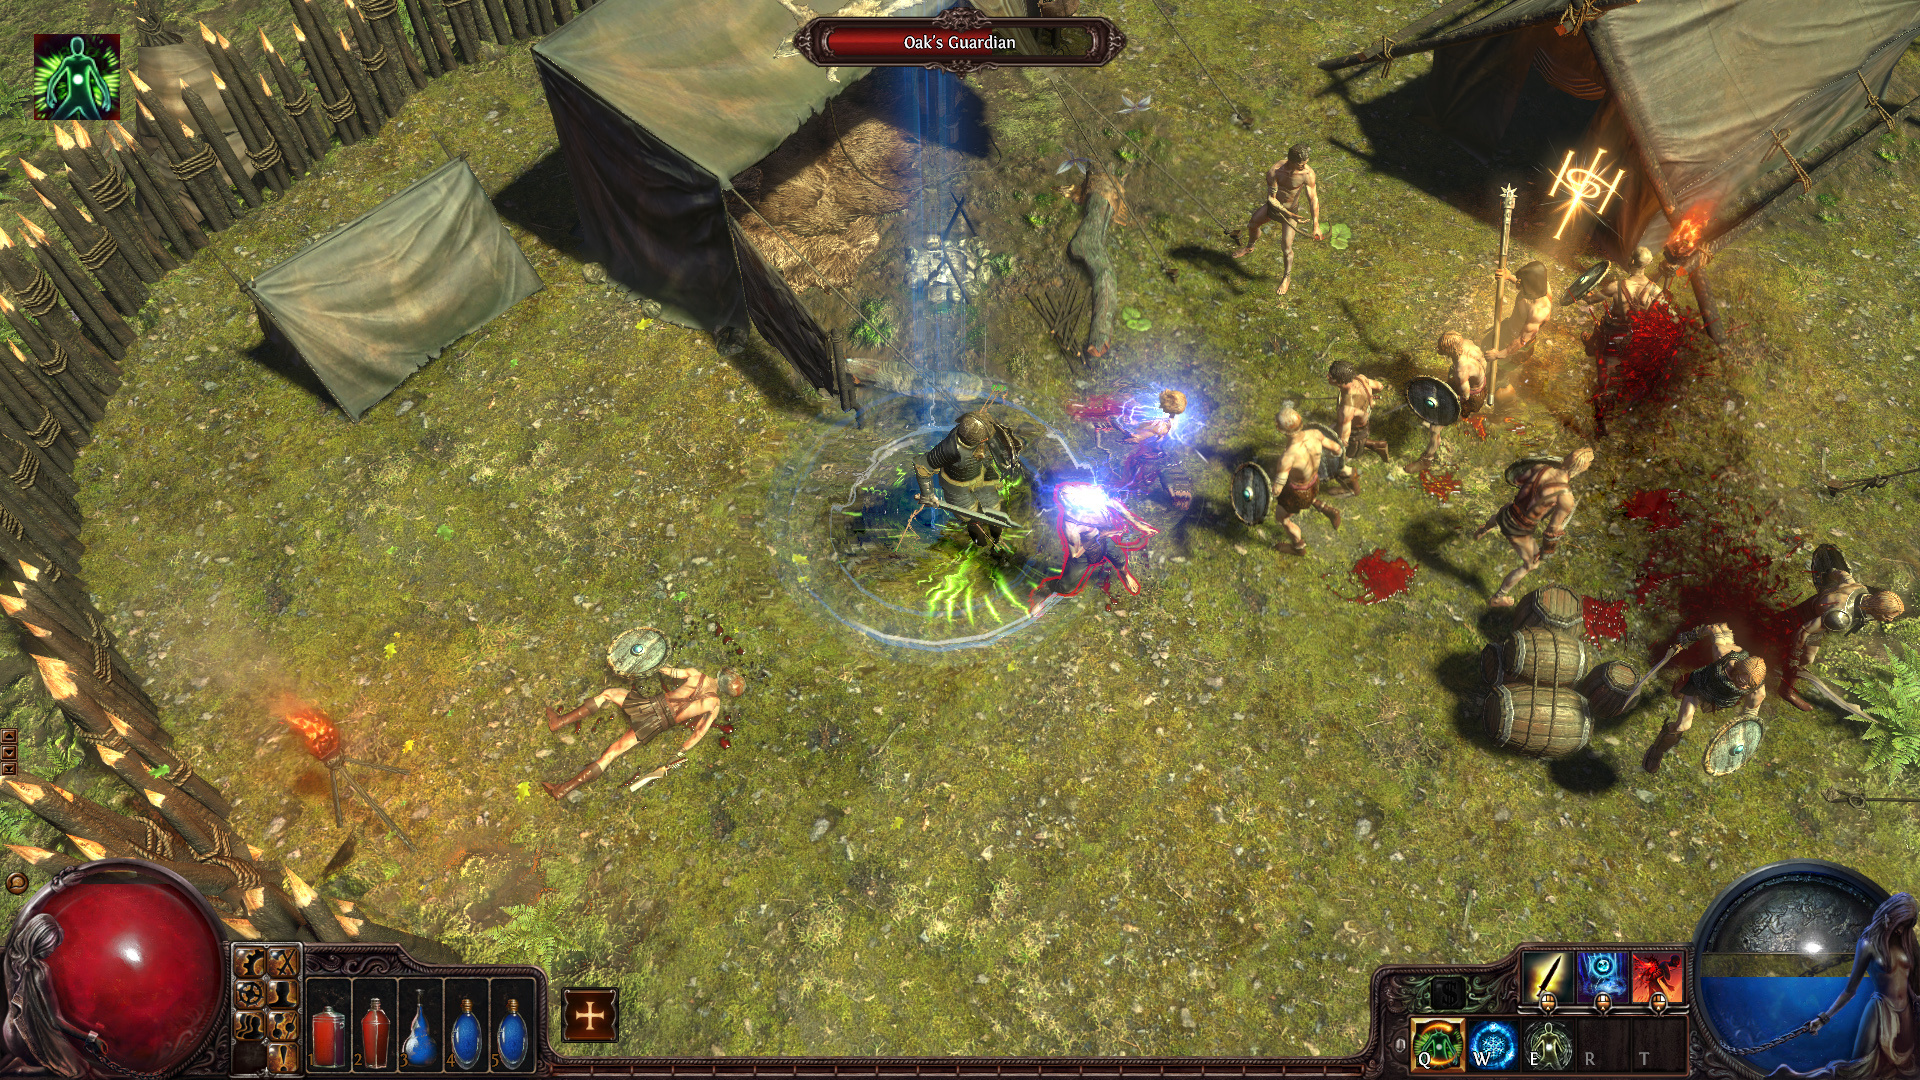 Path of exile 8 7 out of 10 based on 19 ratings